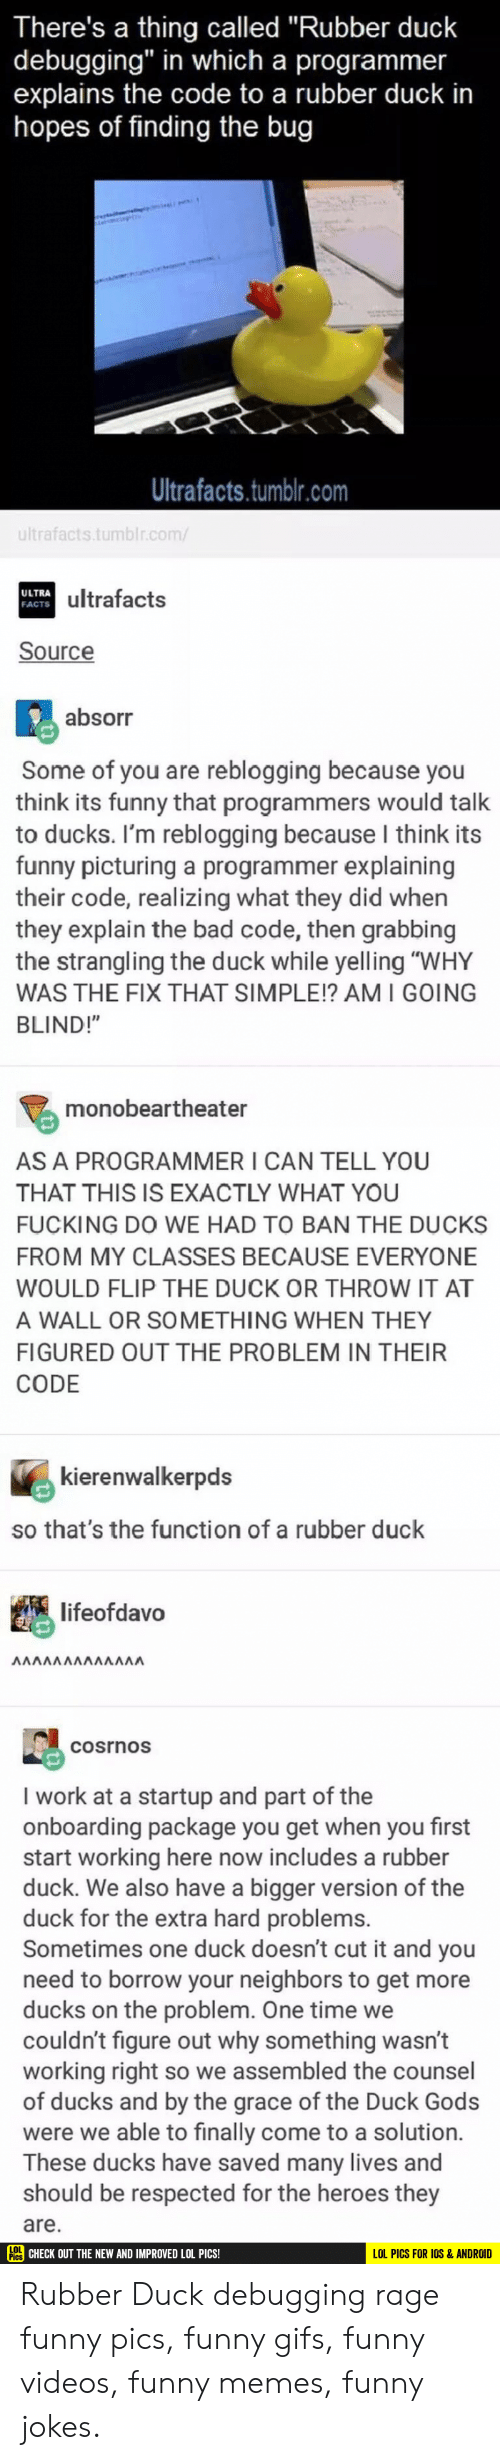 """Android, Bad, and Facts: There's a thing called """"Rubber duck  debugging"""" in which a programmer  explains the code to a rubber duck in  hopes of finding the bug  Ultrafacts.tumblr.com  ultrafacts.tumblr.com/  ultrafacts  ULTRA  FACTS  Source  absorr  Some of you are reblogging because you  think its funny that programmers would talk  to ducks. I'm reblogging because I think its  funny picturing a programmer explaining  their code, realizing what they did when  they explain the bad code, then grabbing  the strangling the duck while yelling """"WHY  WAS THE FIX THAT SIMPLE!? AMI GOING  BLIND!""""  monobeartheater  AS A PROGRAMMER I CAN TELL YOU  THAT THIS IS EXACTLY WHAT YOU  FUCKING DO WE HAD TO BAN THE DUCKS  FROM MY CLASSES BECAUSE EVERYONE  WOULD FLIP THE DUCK OR THROW IT AT  A WALL OR SOMETHING WHEN THEY  FIGURED OUT THE PROBLEM IN THEIR  CODE  kierenwalkerpds  so that's the function of a rubber duck  lifeofdavo  ΛΛΛΛΛΛΛΛΛΛΛΛ  cosrnos  I work at a startup and part of the  onboarding package you get when you first  start working here now includes a rubber  duck. We also have a bigger version of the  duck for the extra hard problems.  Sometimes one duck doesn't cut it and you  need to borrow your neighbors to get more  ducks on the problem. One time we  couldn't figure out why something wasn't  working right so we assembled the counsel  of ducks and by the grace of the Duck Gods  were we able to finally come to a solution.  These ducks have saved many lives and  should be respected for the heroes they  are.  HC CHECK OUT THE NEW AND IMPROVED LOL PICS!  LOL PICS FOR IOS &ANDROID Rubber Duck debugging rage funny pics, funny gifs, funny videos, funny memes, funny jokes."""